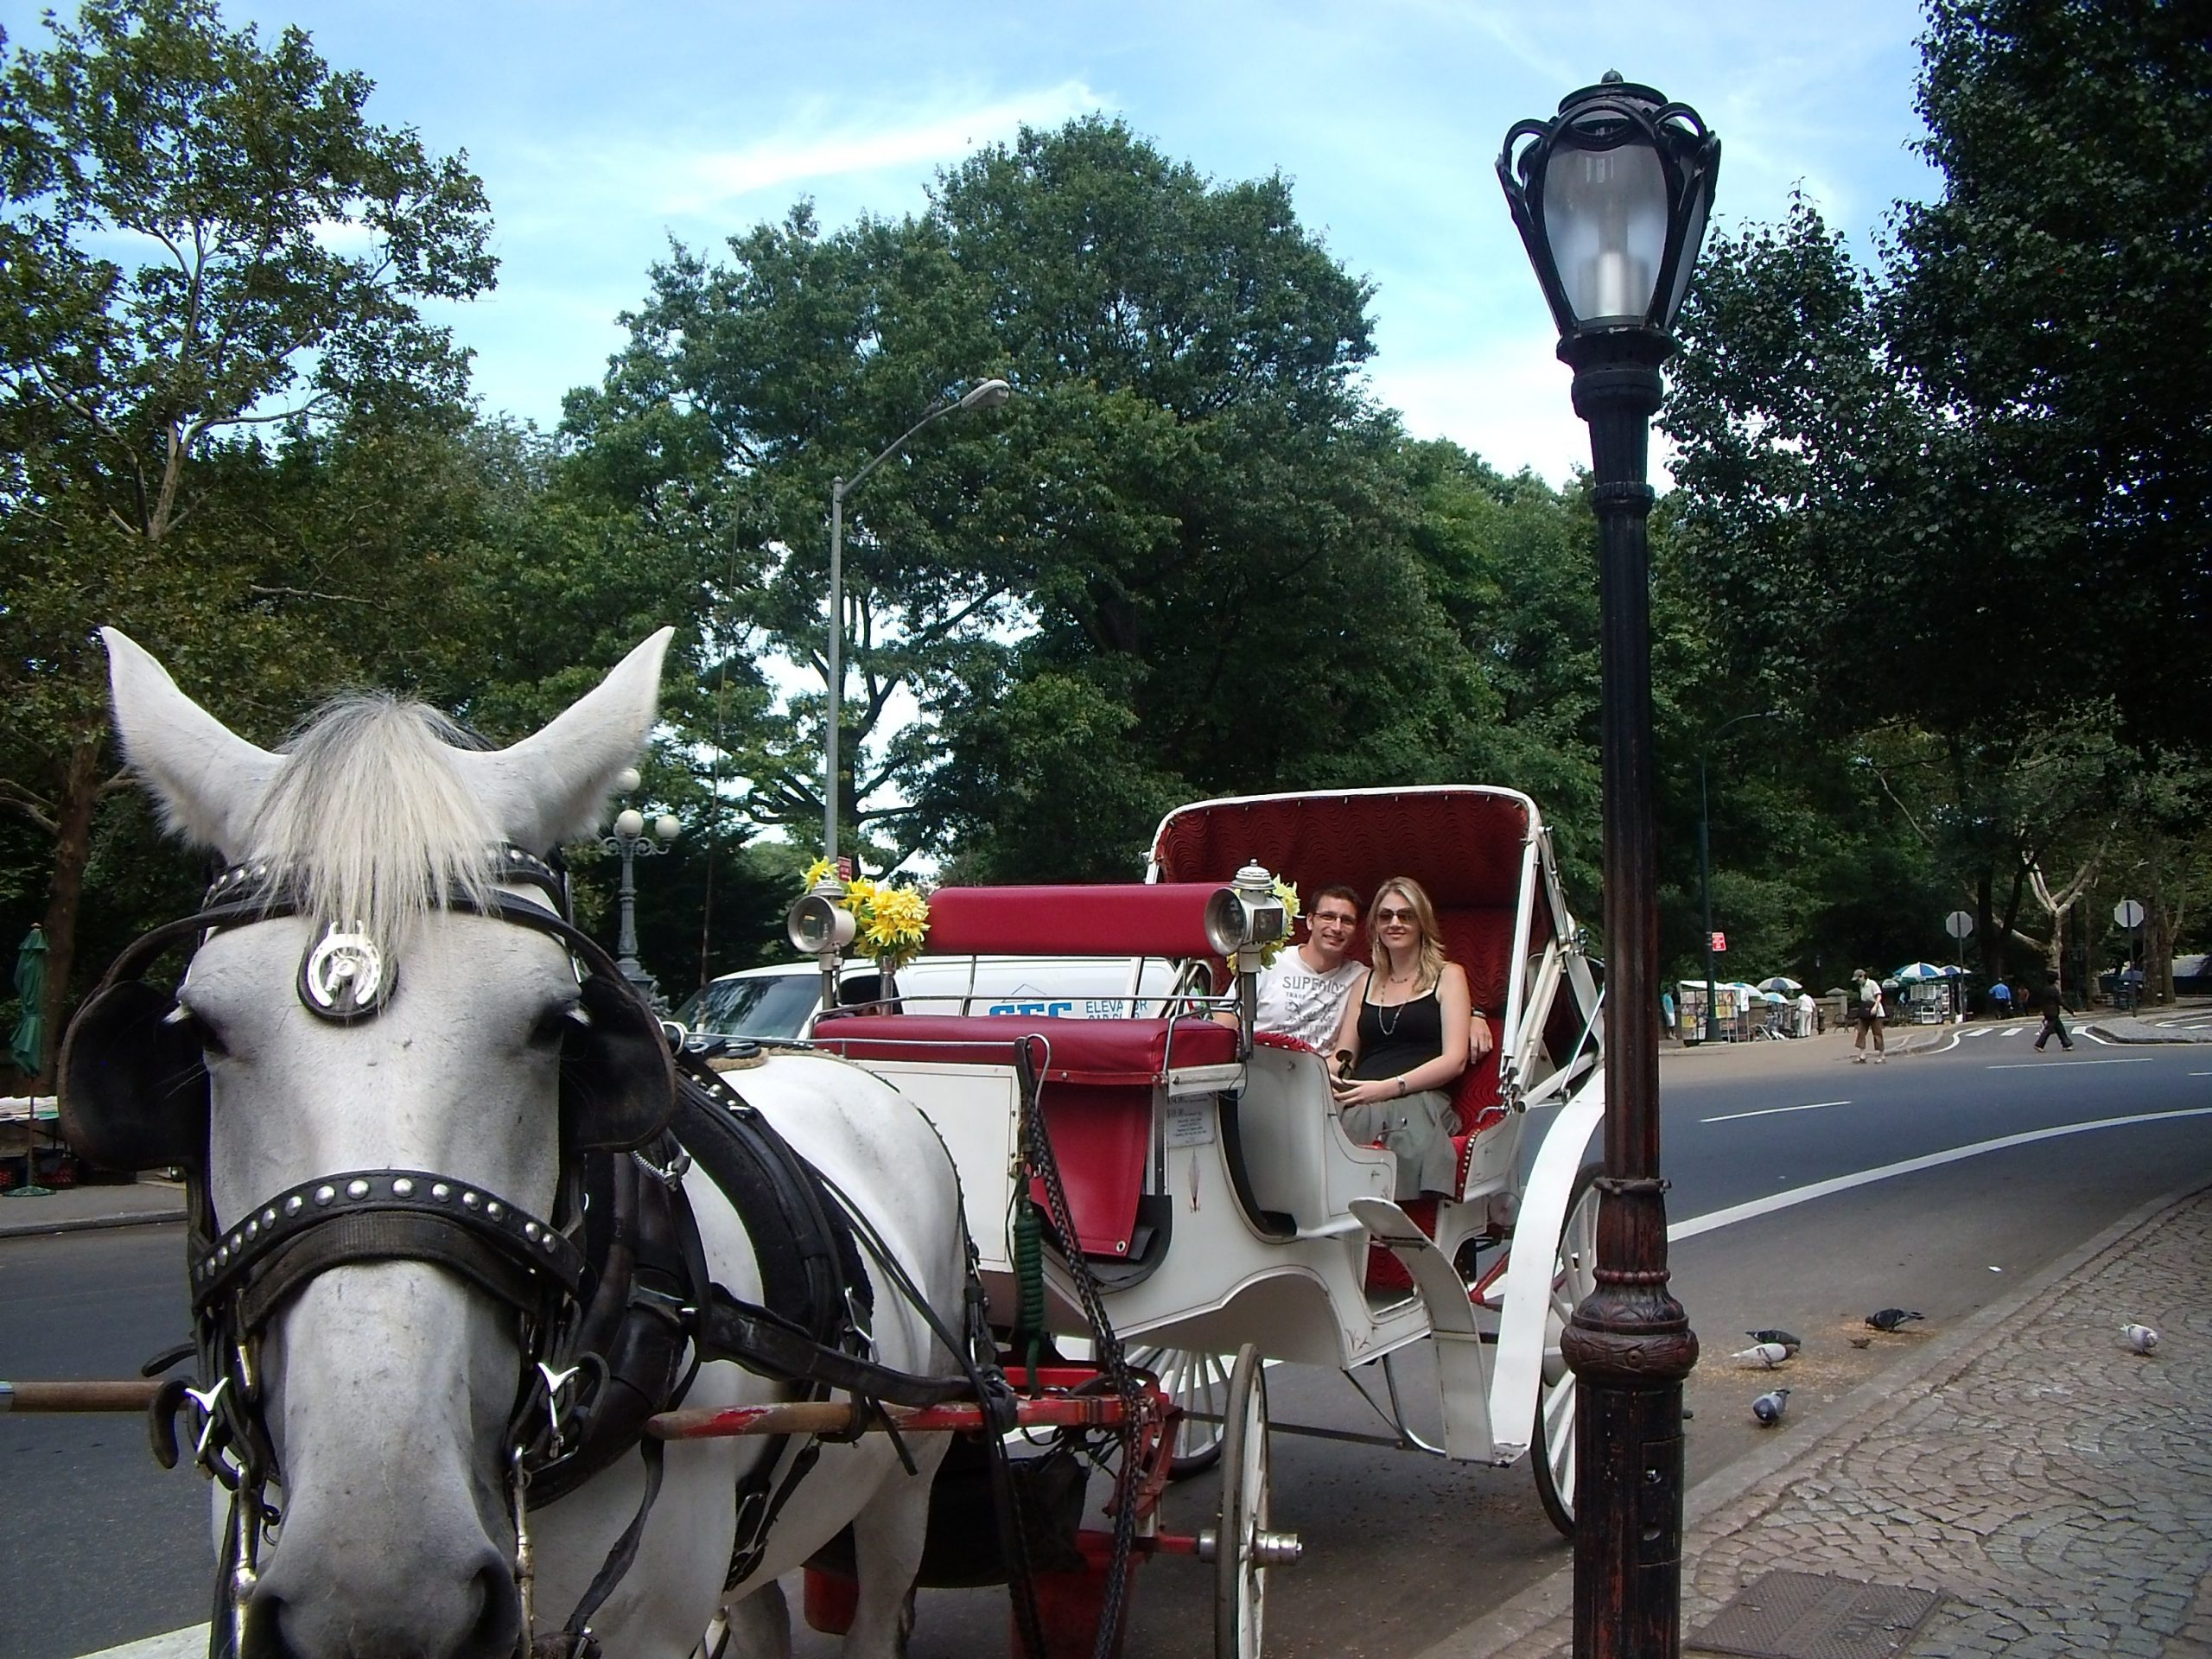 central park horse carriage ride new york city guide